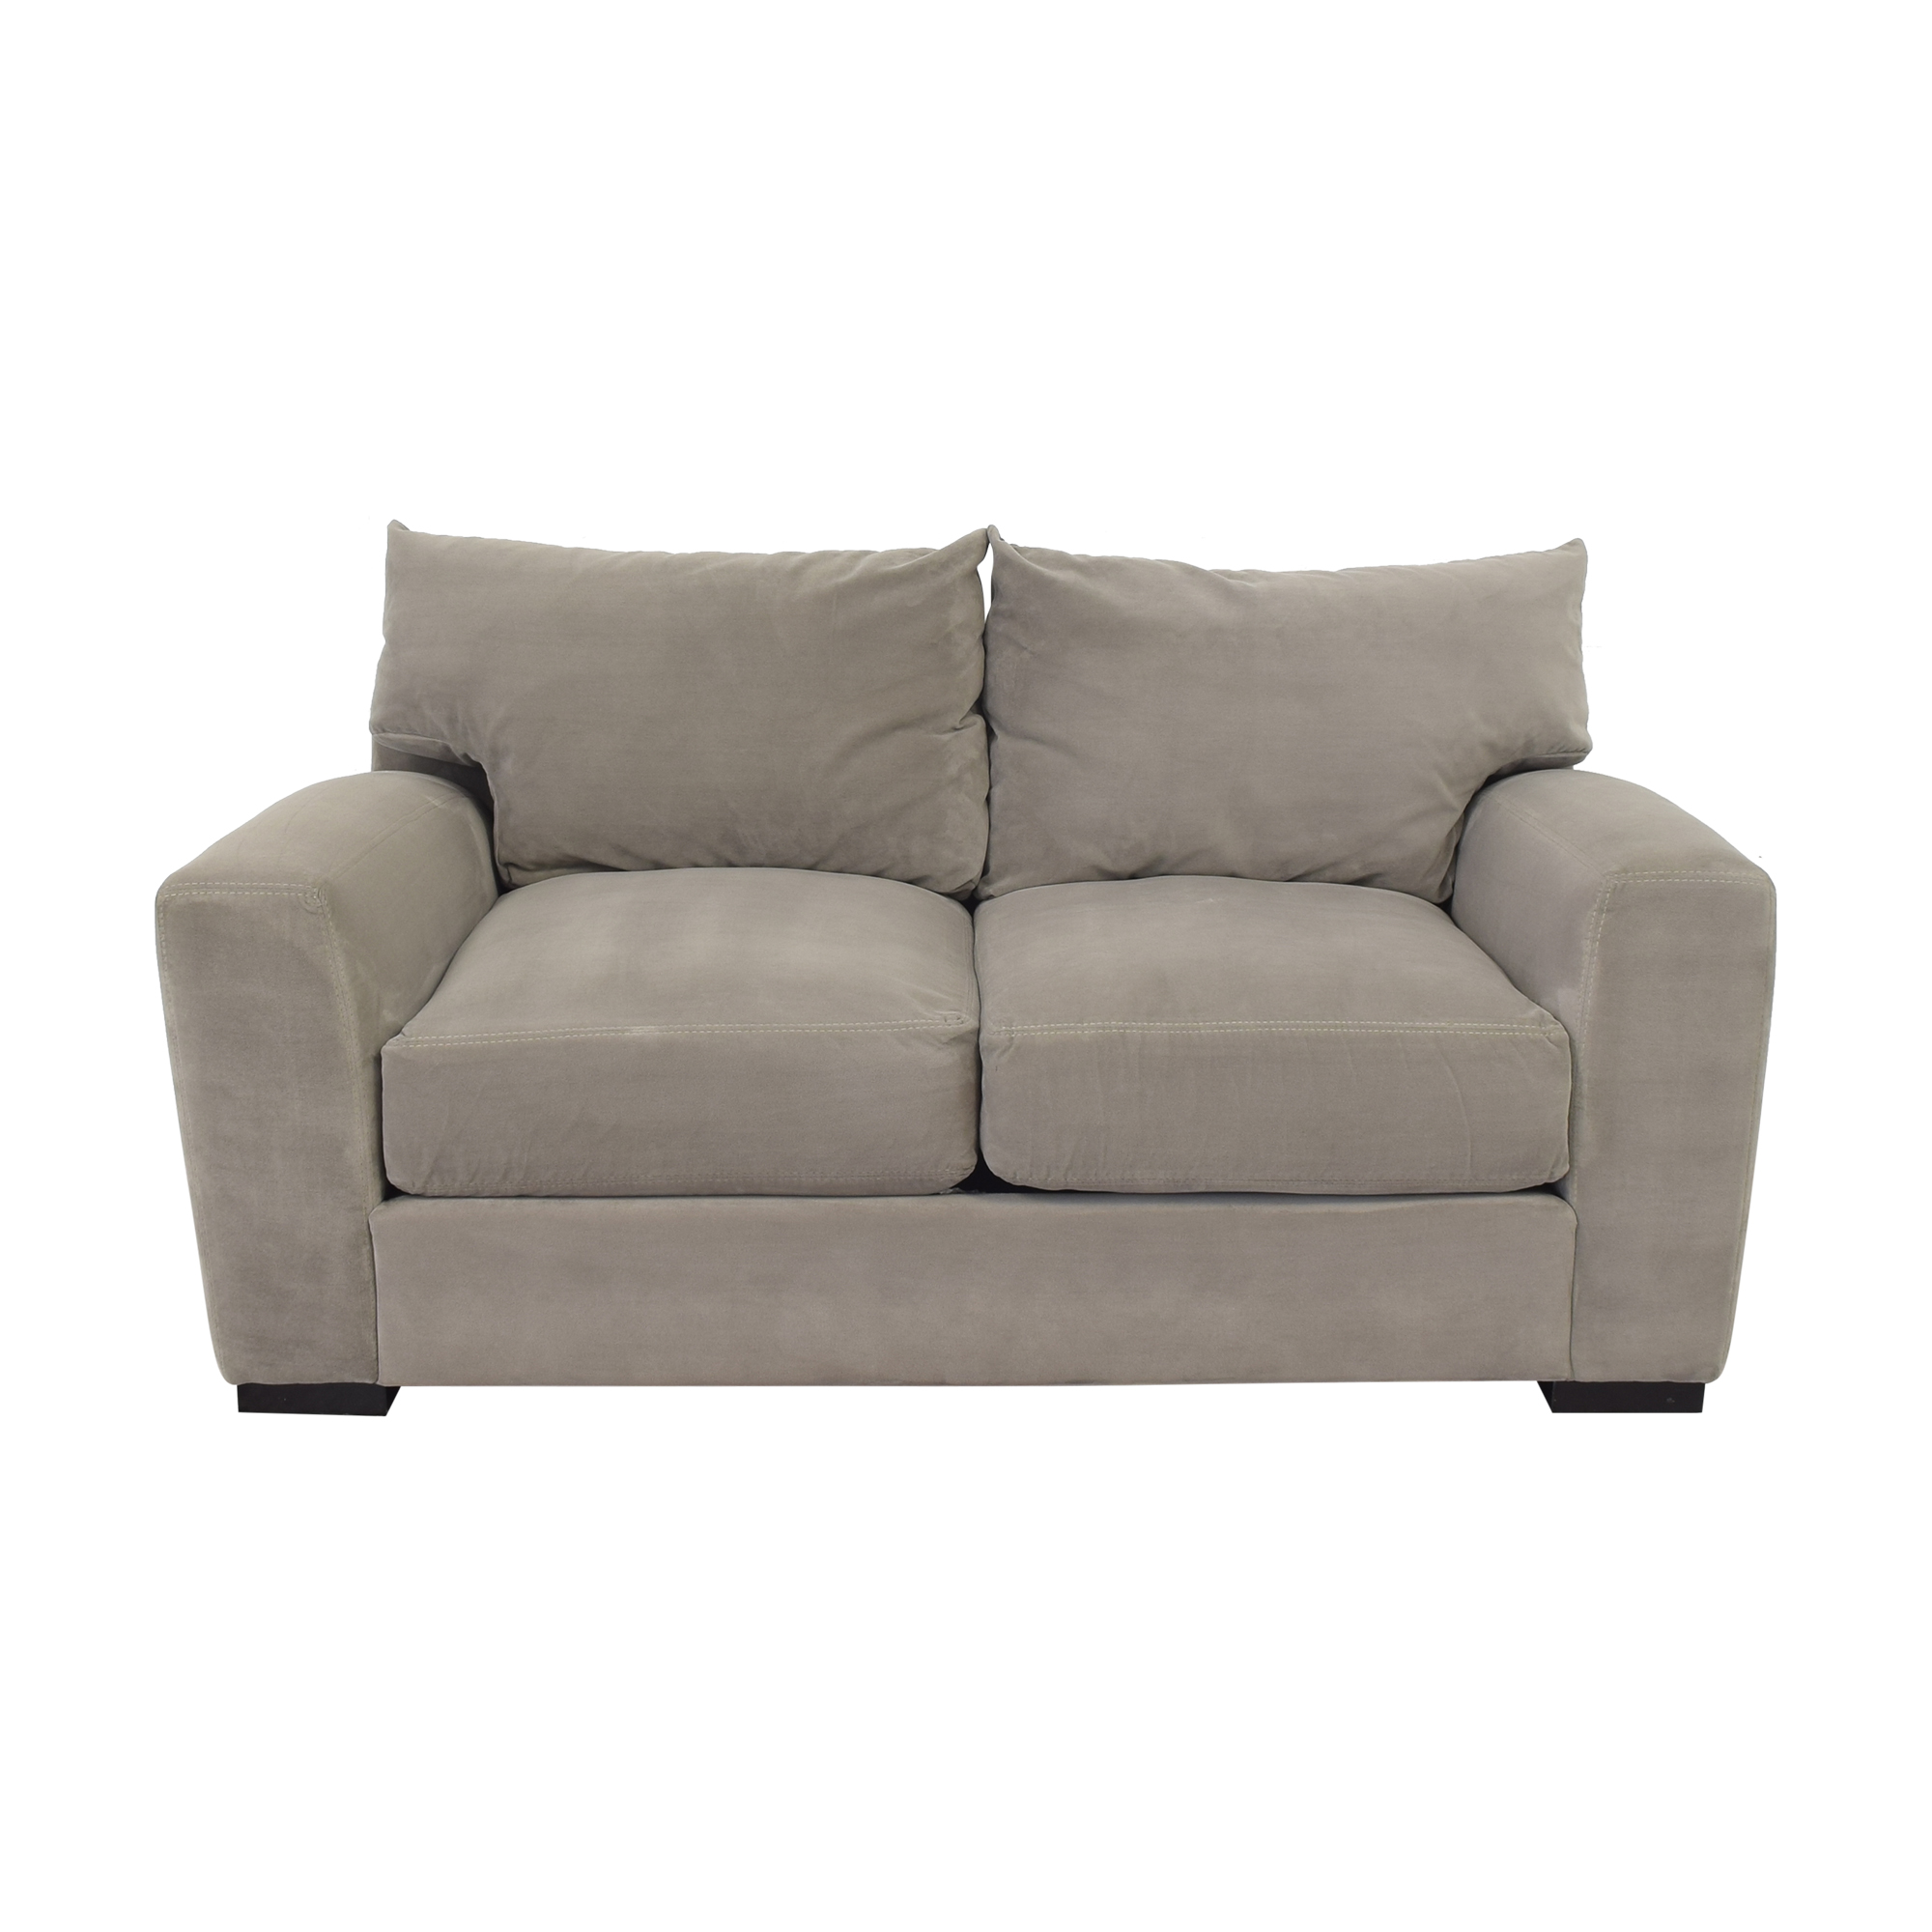 Raymour & Flanigan Raymour & Flanigan Loveseat for sale